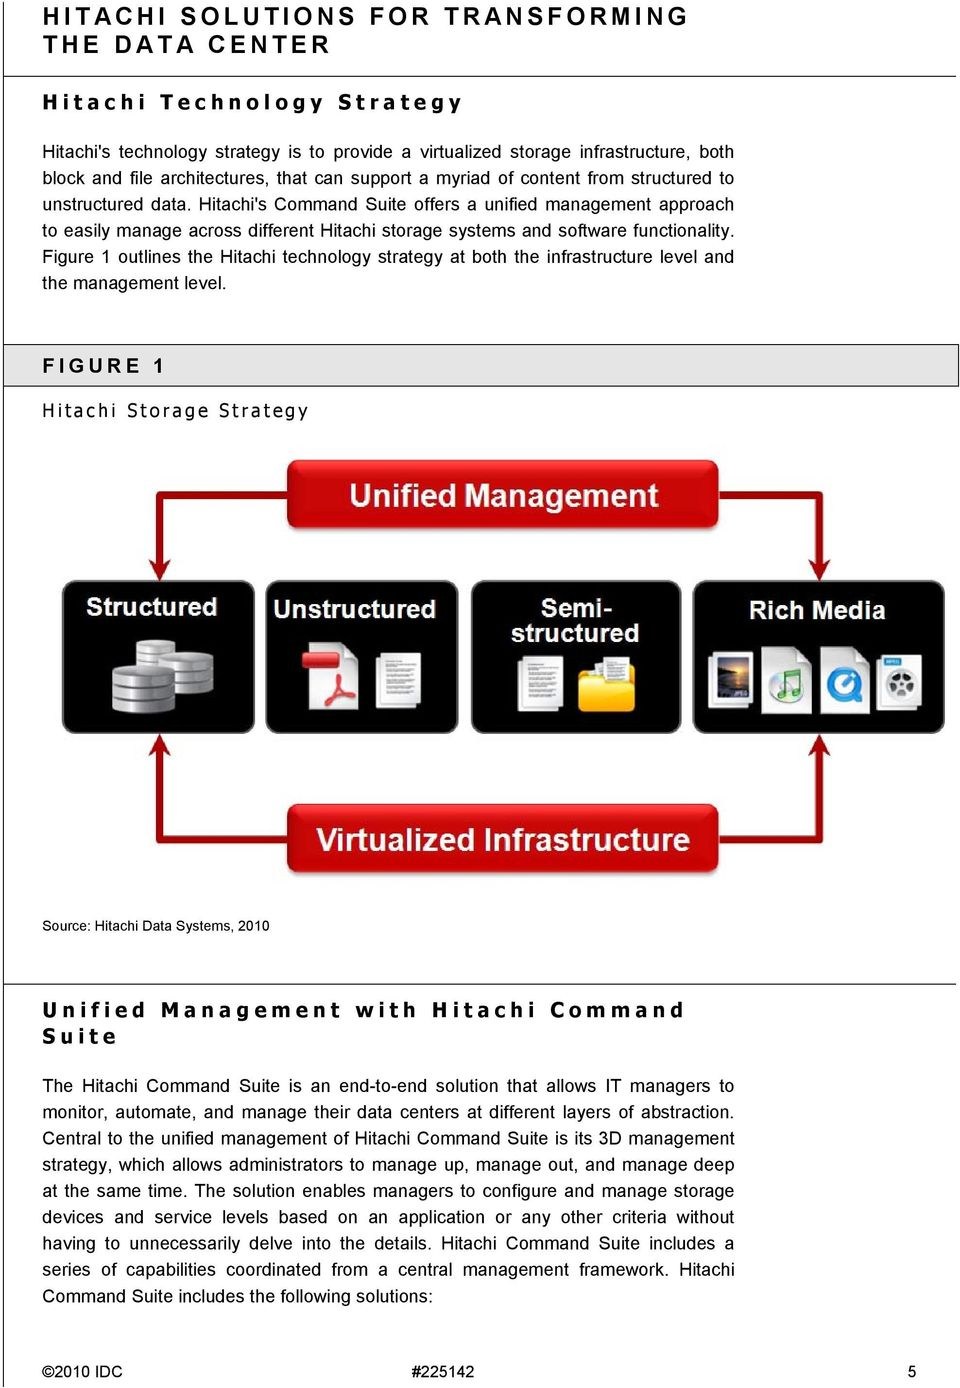 Hitachi's Command Suite offers a unified management approach to easily manage across different Hitachi storage systems and software functionality.